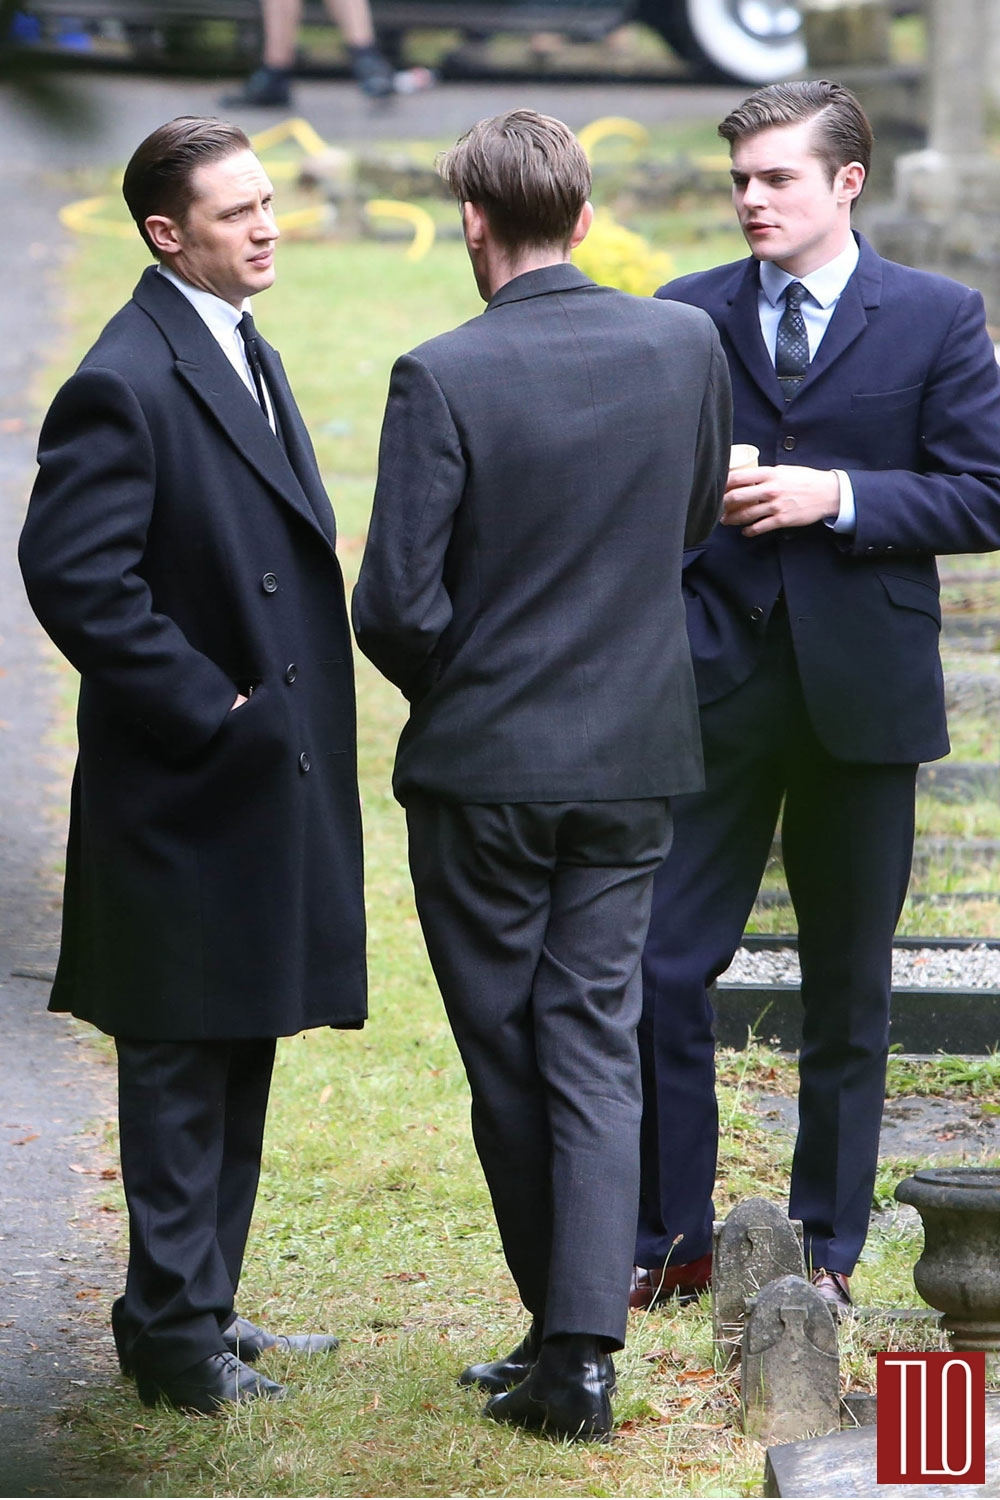 Tom-Hardy-On-Set-Legend-Movie-Tom-Lorenzo-Site-TLO (1)